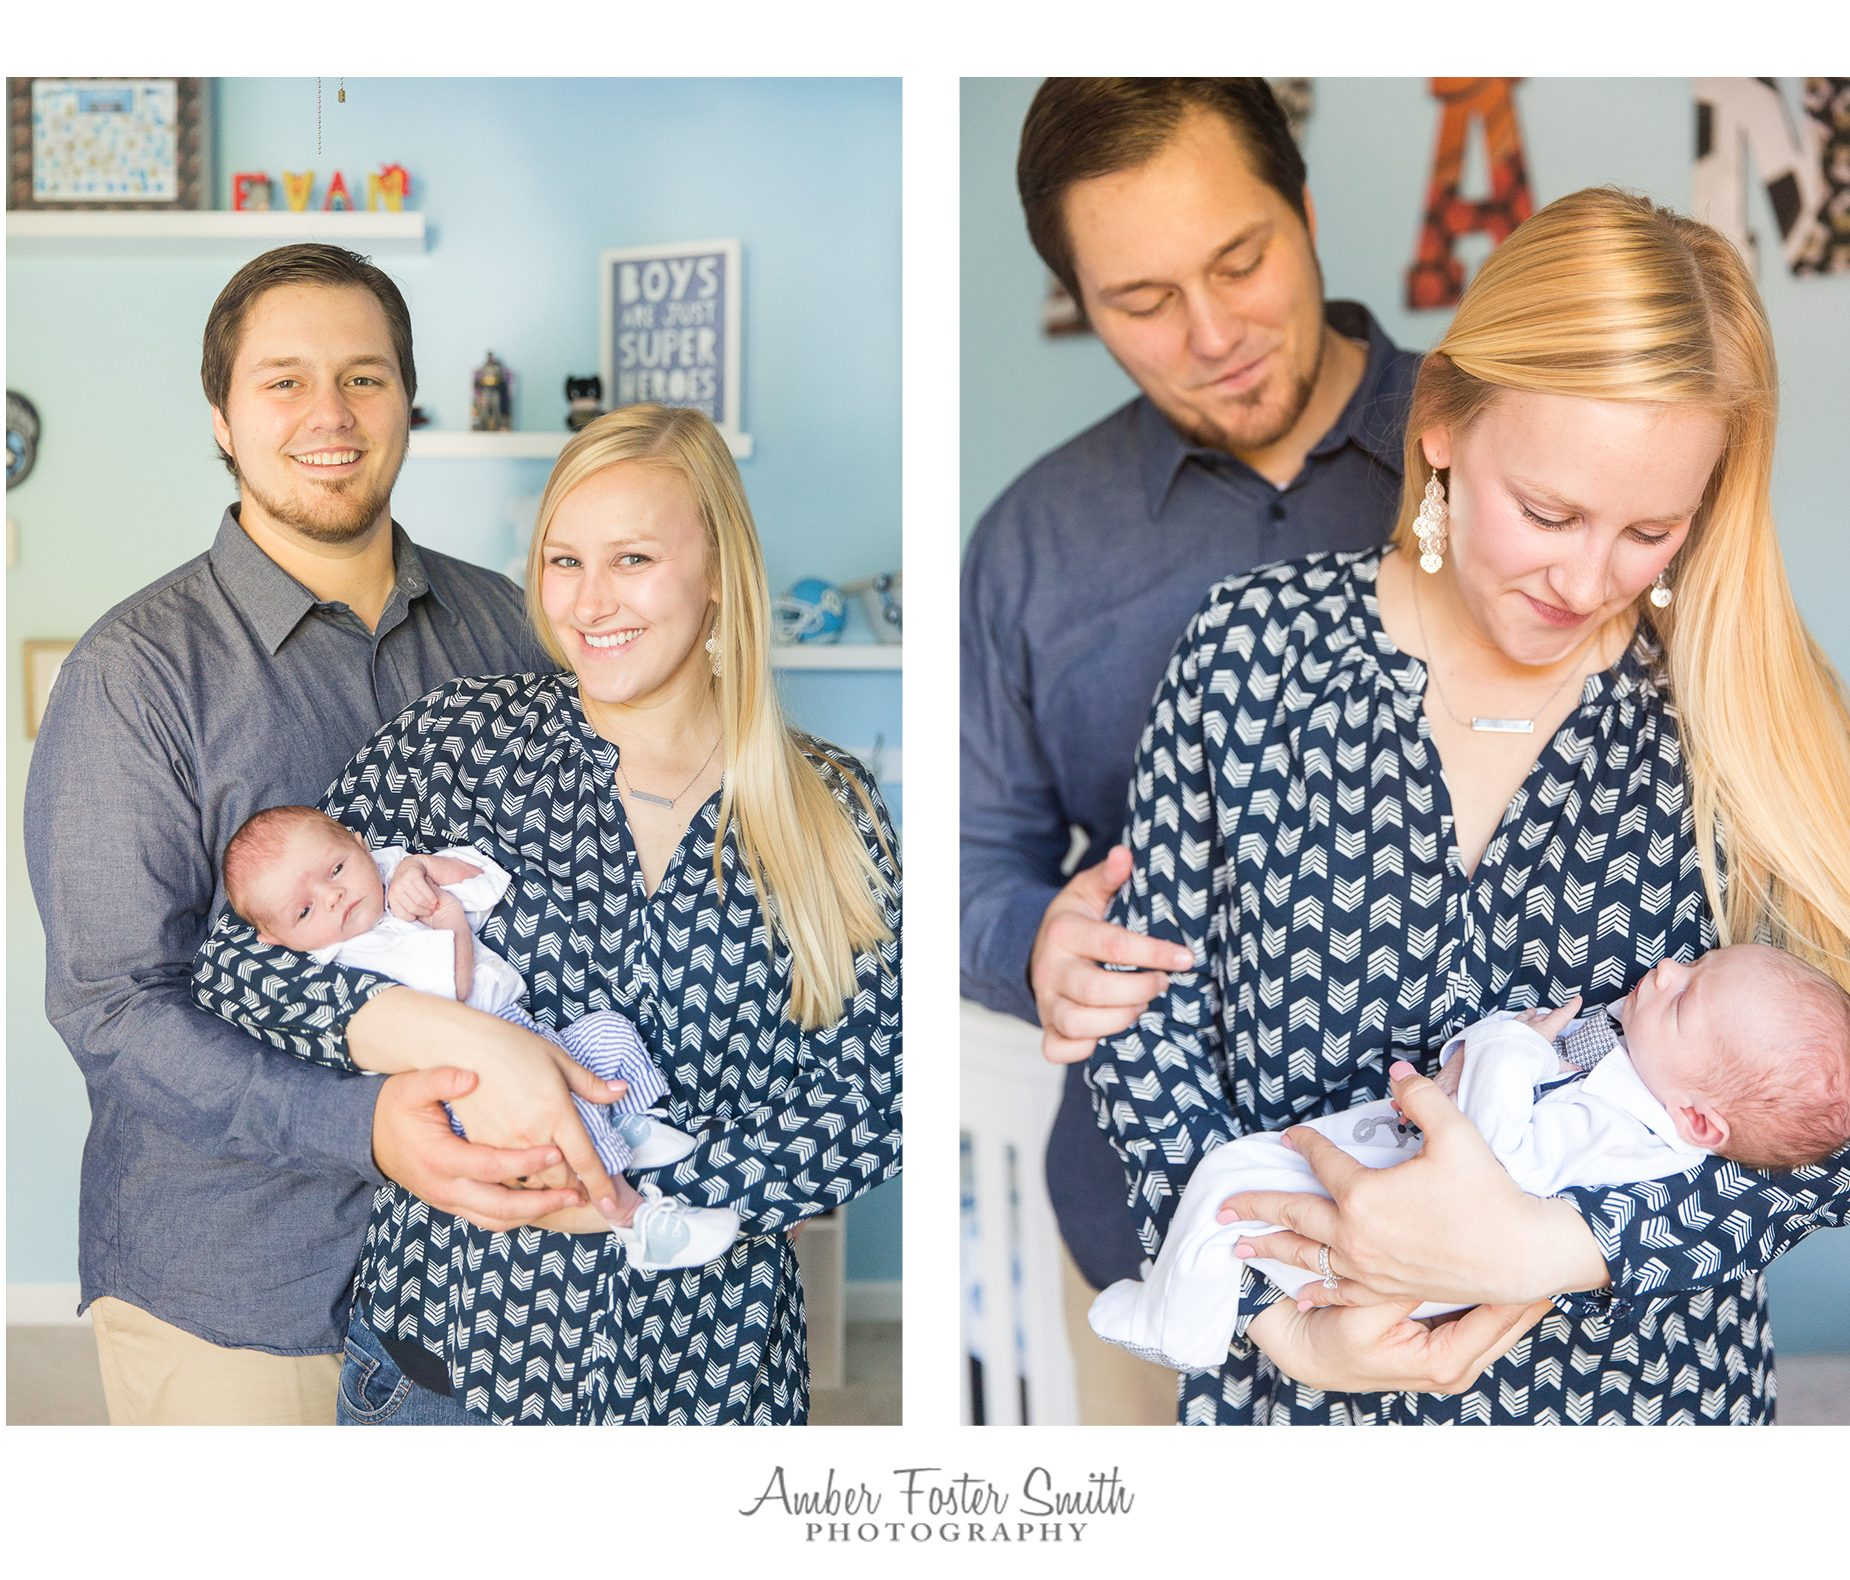 Amber Foster Smith Photography - Holly Springs Newborn Photography